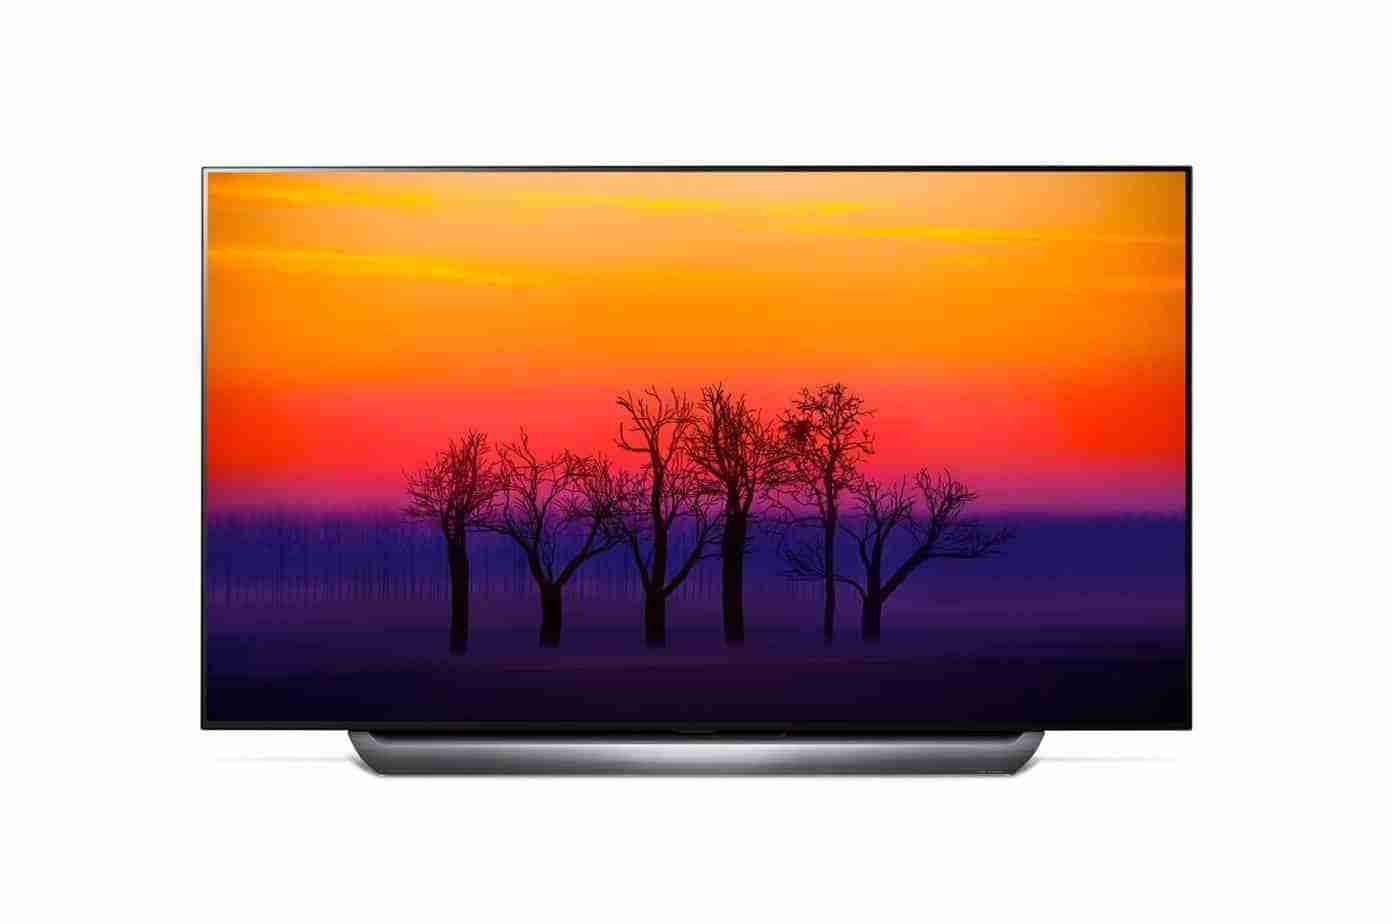 Do Oled Tvs Suffer Screen Burn In Or Permanent Image Retention